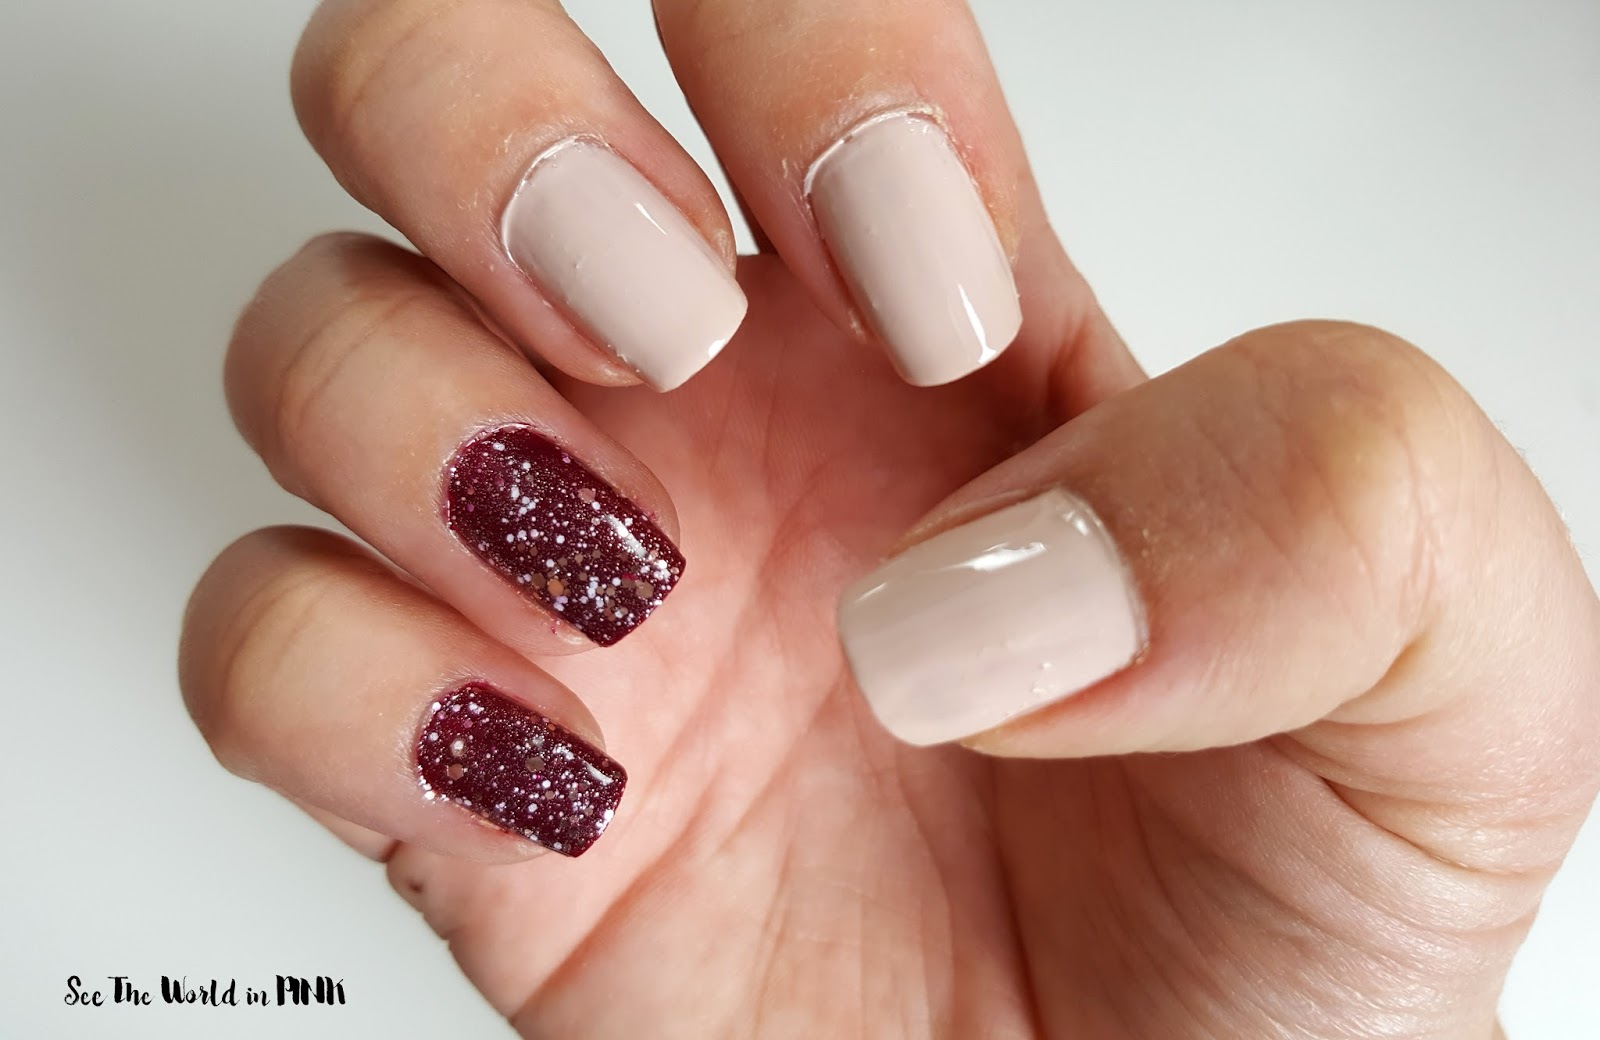 Manicure Tuesday - Nails Inc. Gel Effect Polish 1 Week Update and Review!